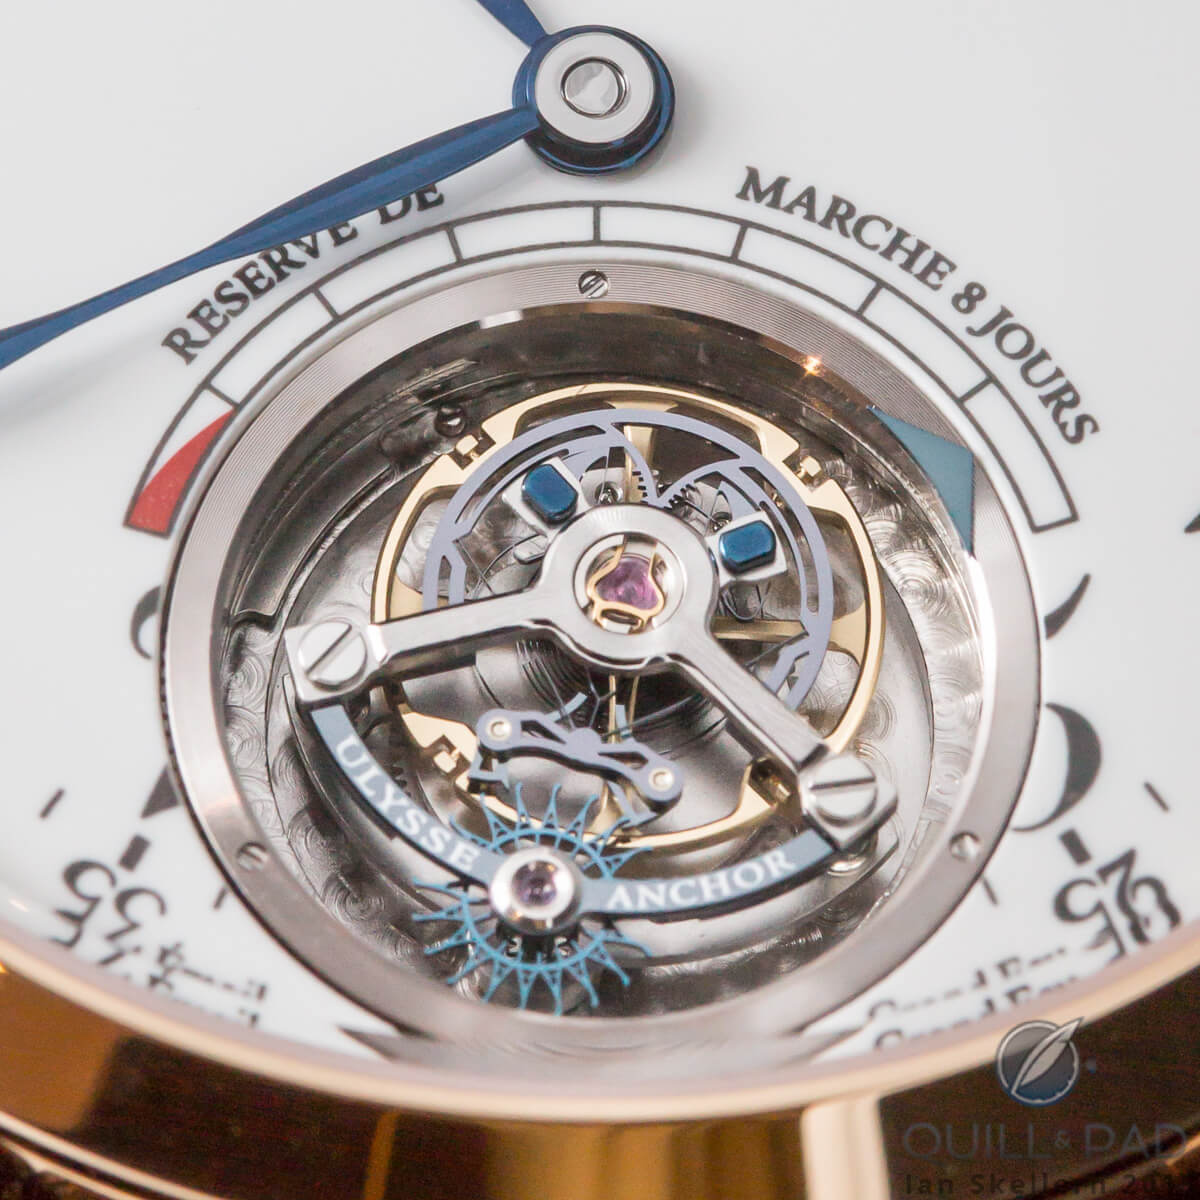 Close-up look at the tourbillon and escapement of the Ulysse Anchor Tourbillon